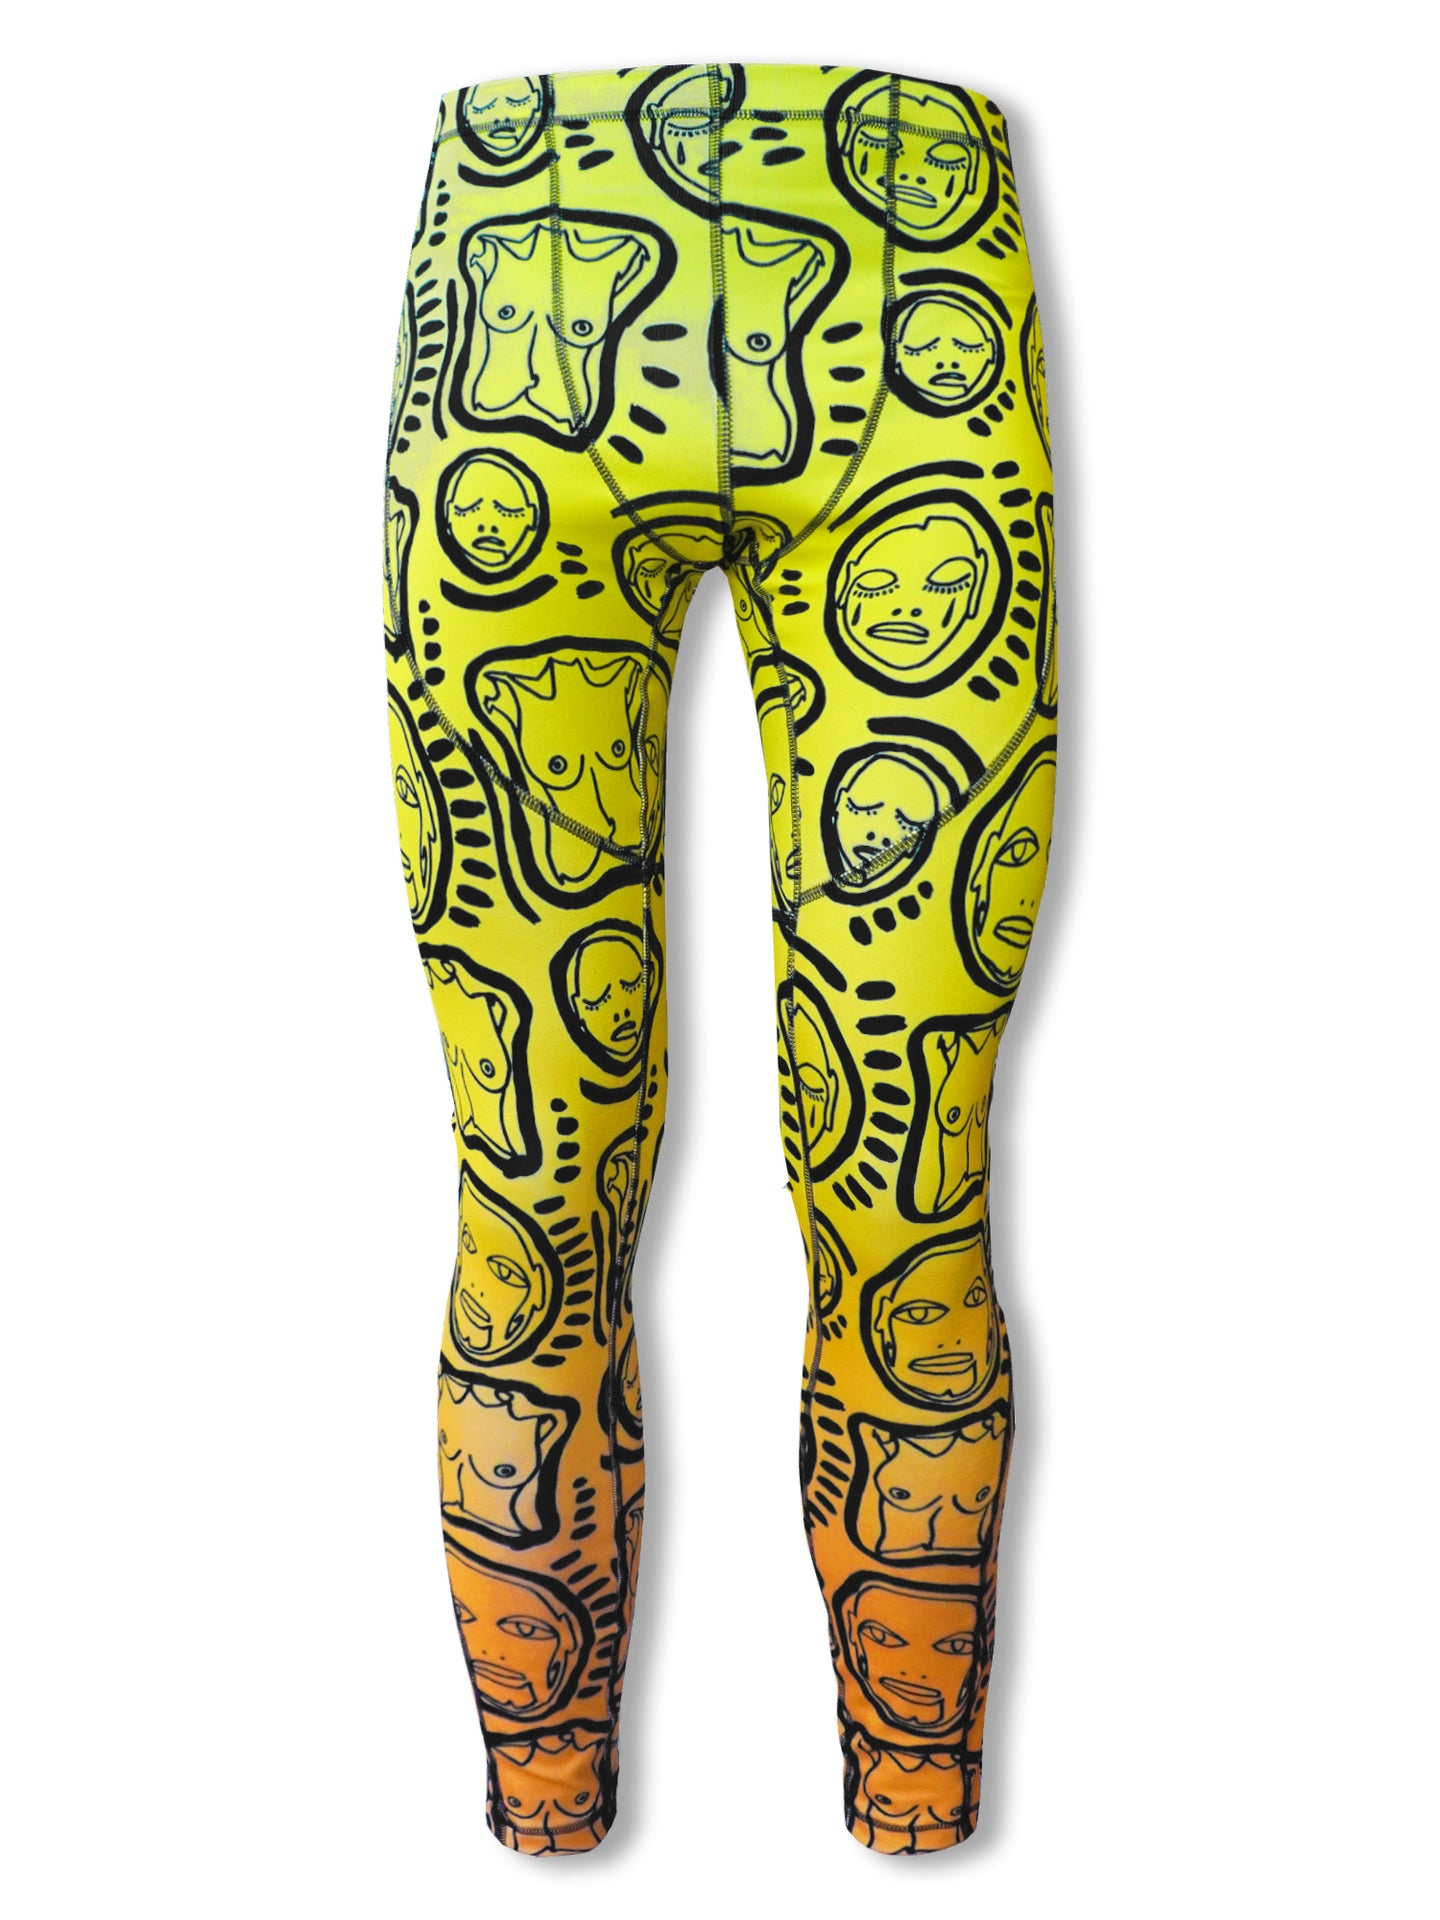 'All Over You' Hercules Compression Pants - Patrick Church